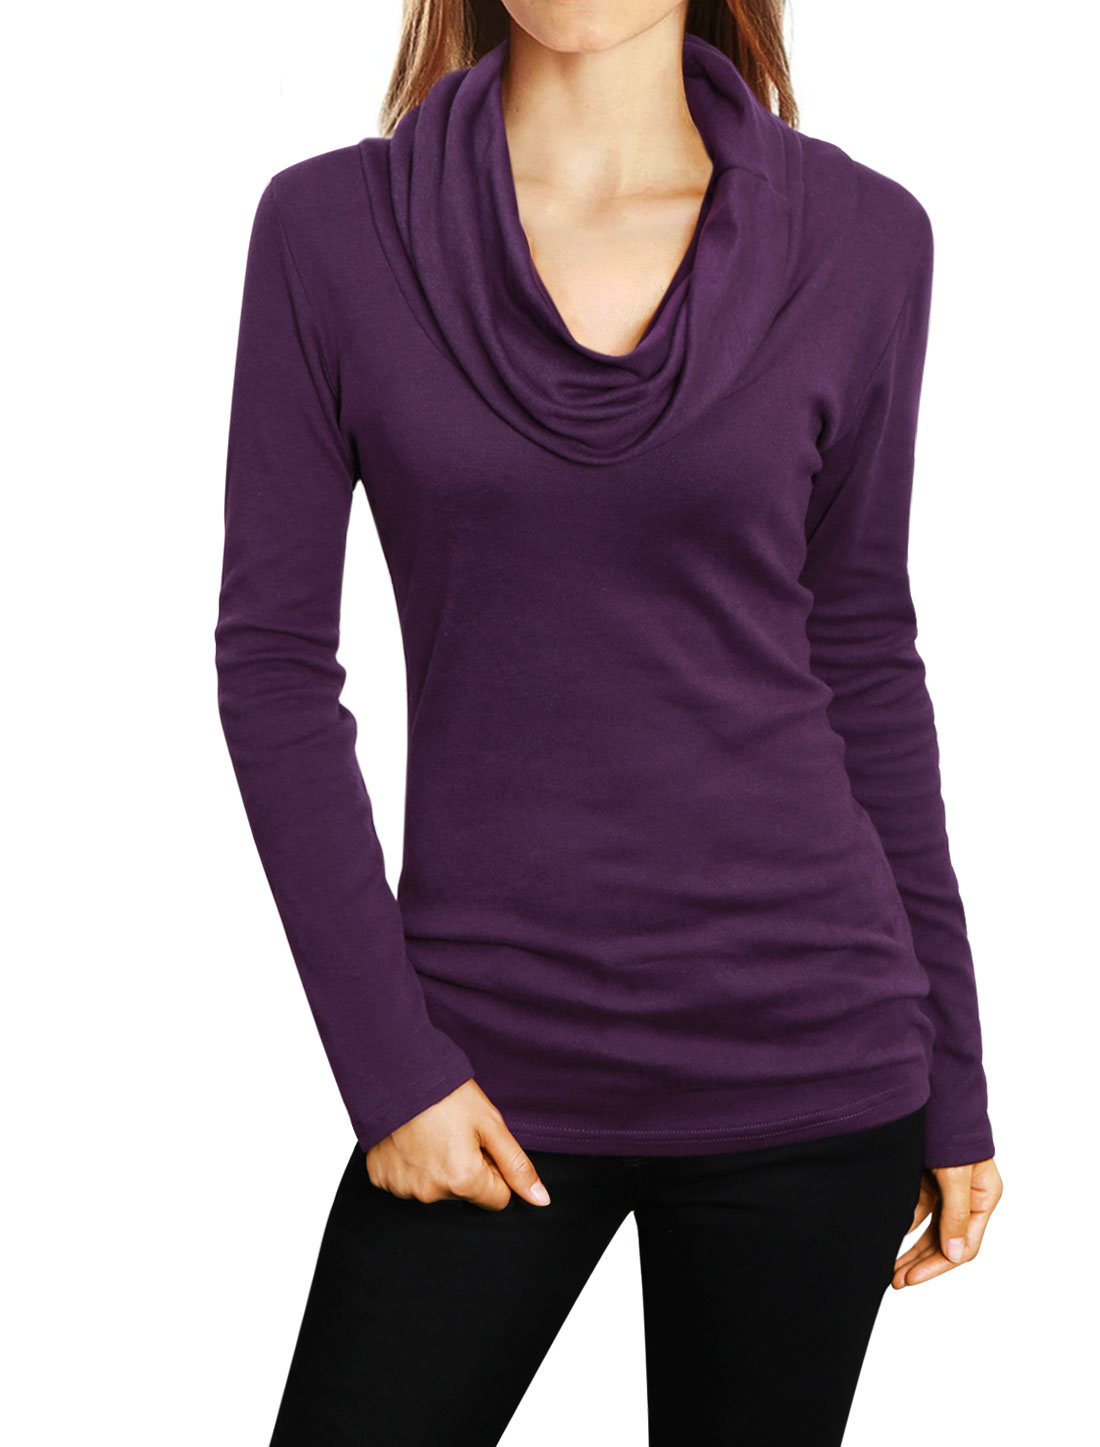 Women Cowl Neck Long Sleeves Slim Cut Slipover Casual Top Purple L